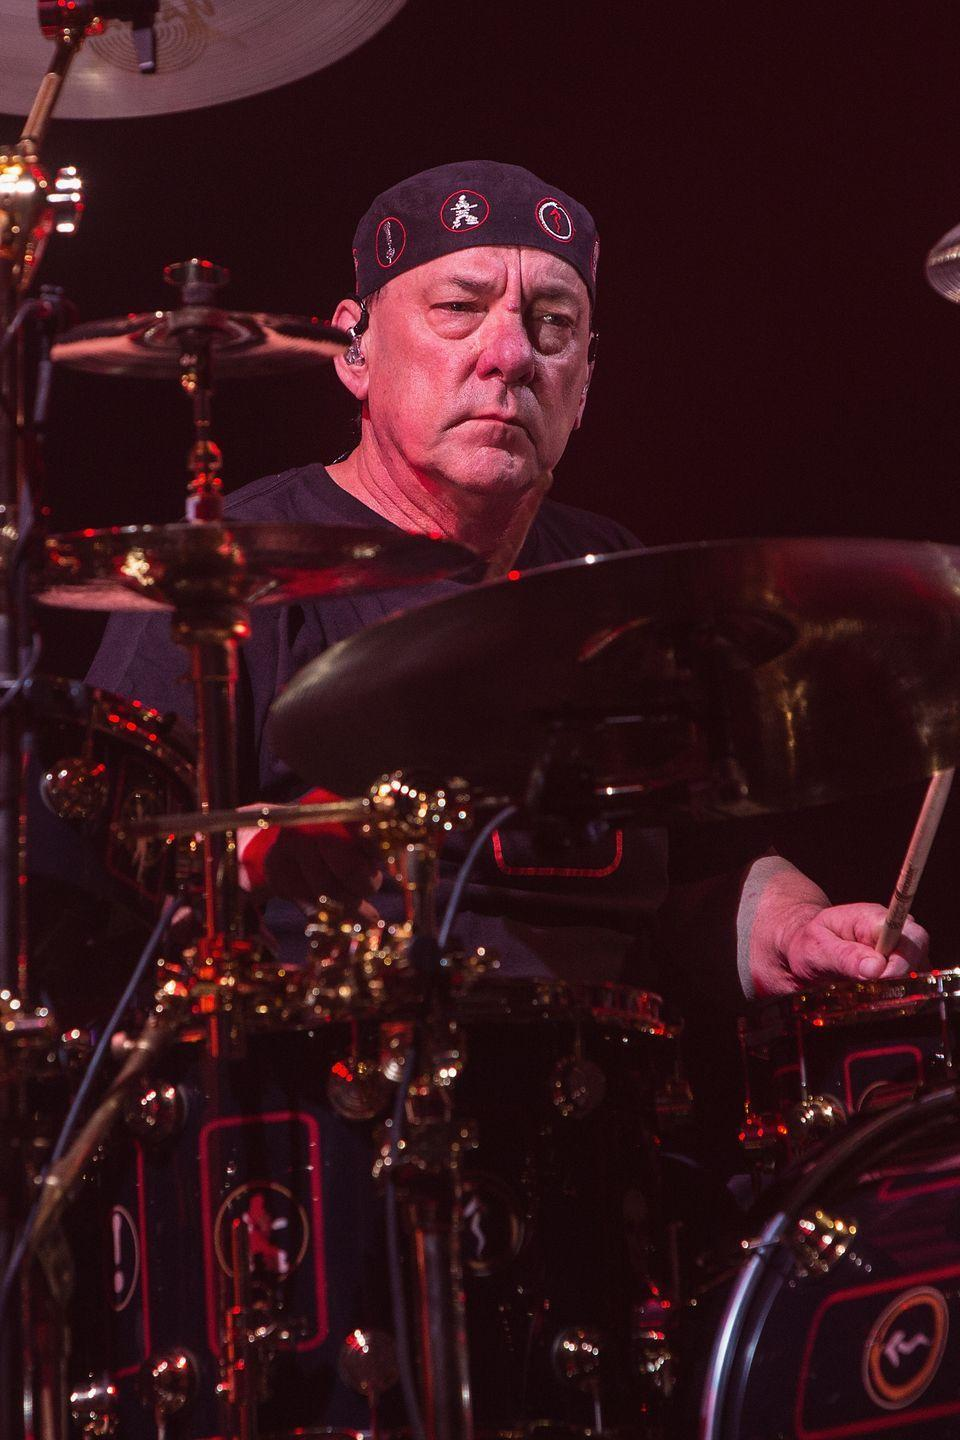 "<p>""RIP Neil Peart drummer for Canadian rock band #Rush Condolences to his family and fellow band members Geddy and Alex #Rush #neilpeart."" - Bryan Adams</p>"